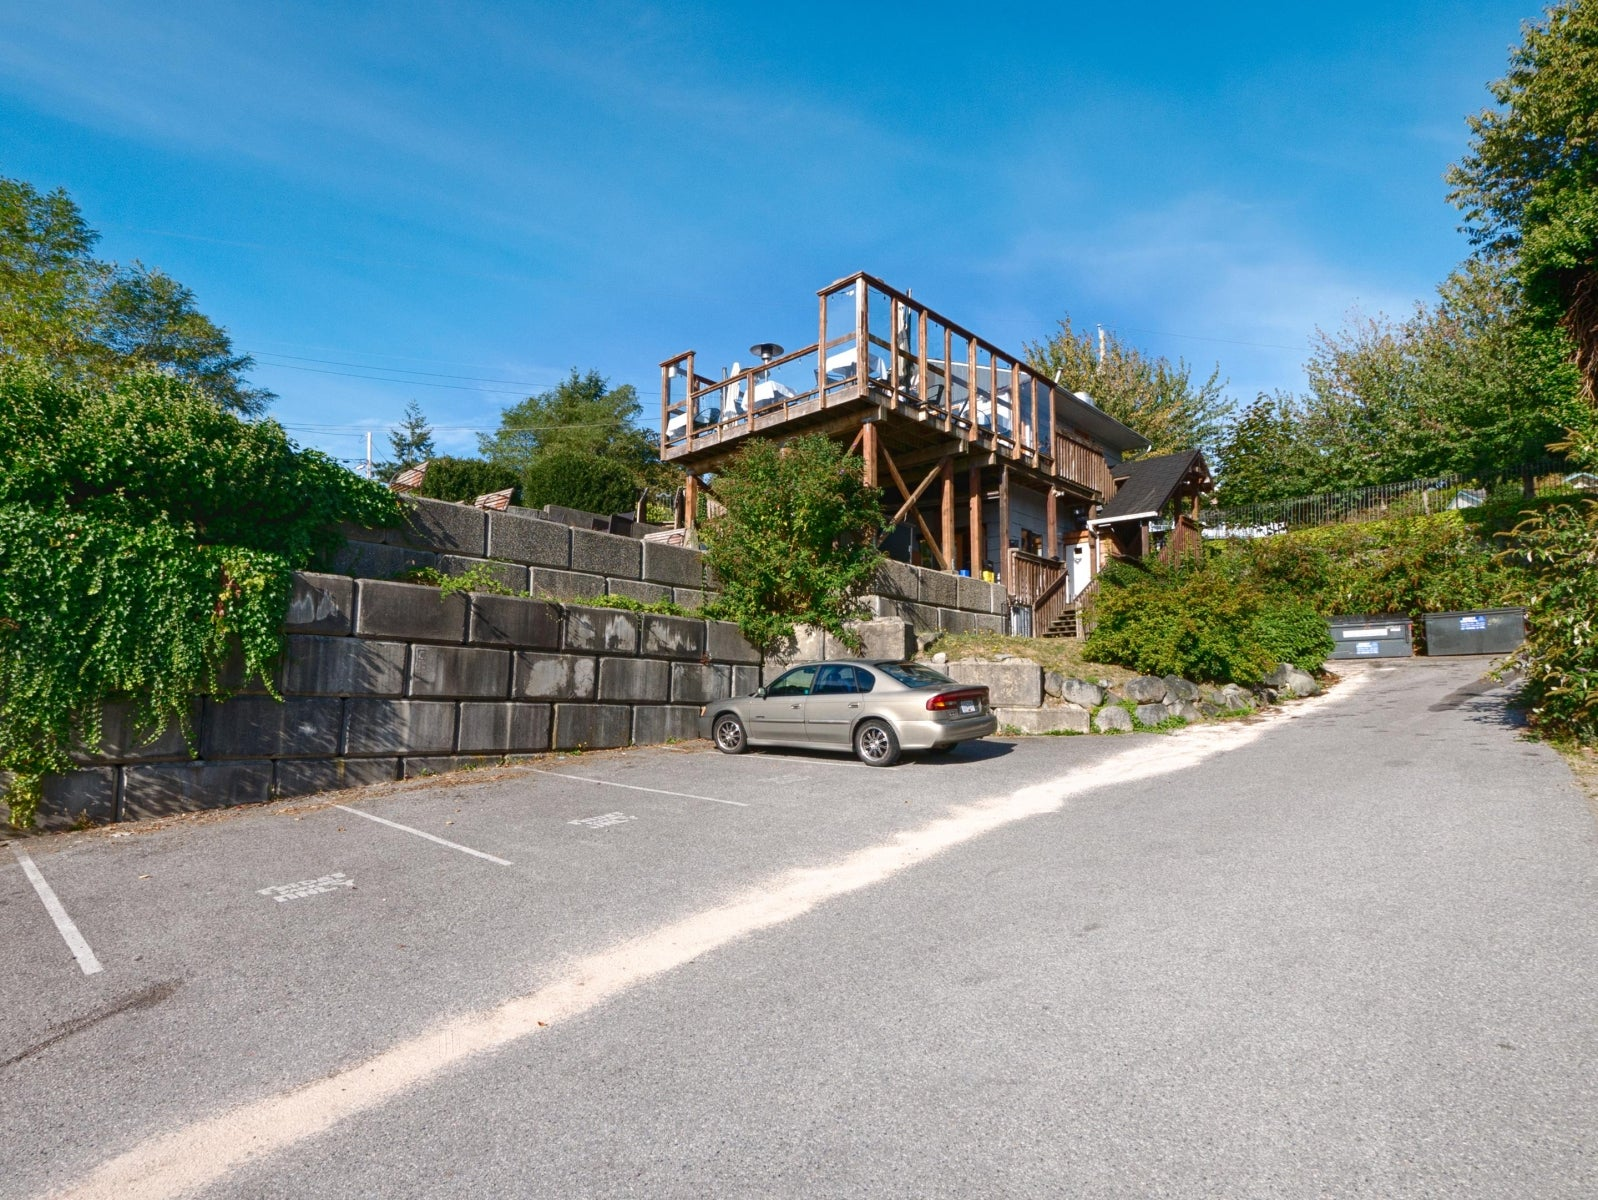 The Nova Kitchen 546 Gibsons Way, Gibsons BC V0N1V9 - Gibsons & Area COMM for sale(C8014726) #20